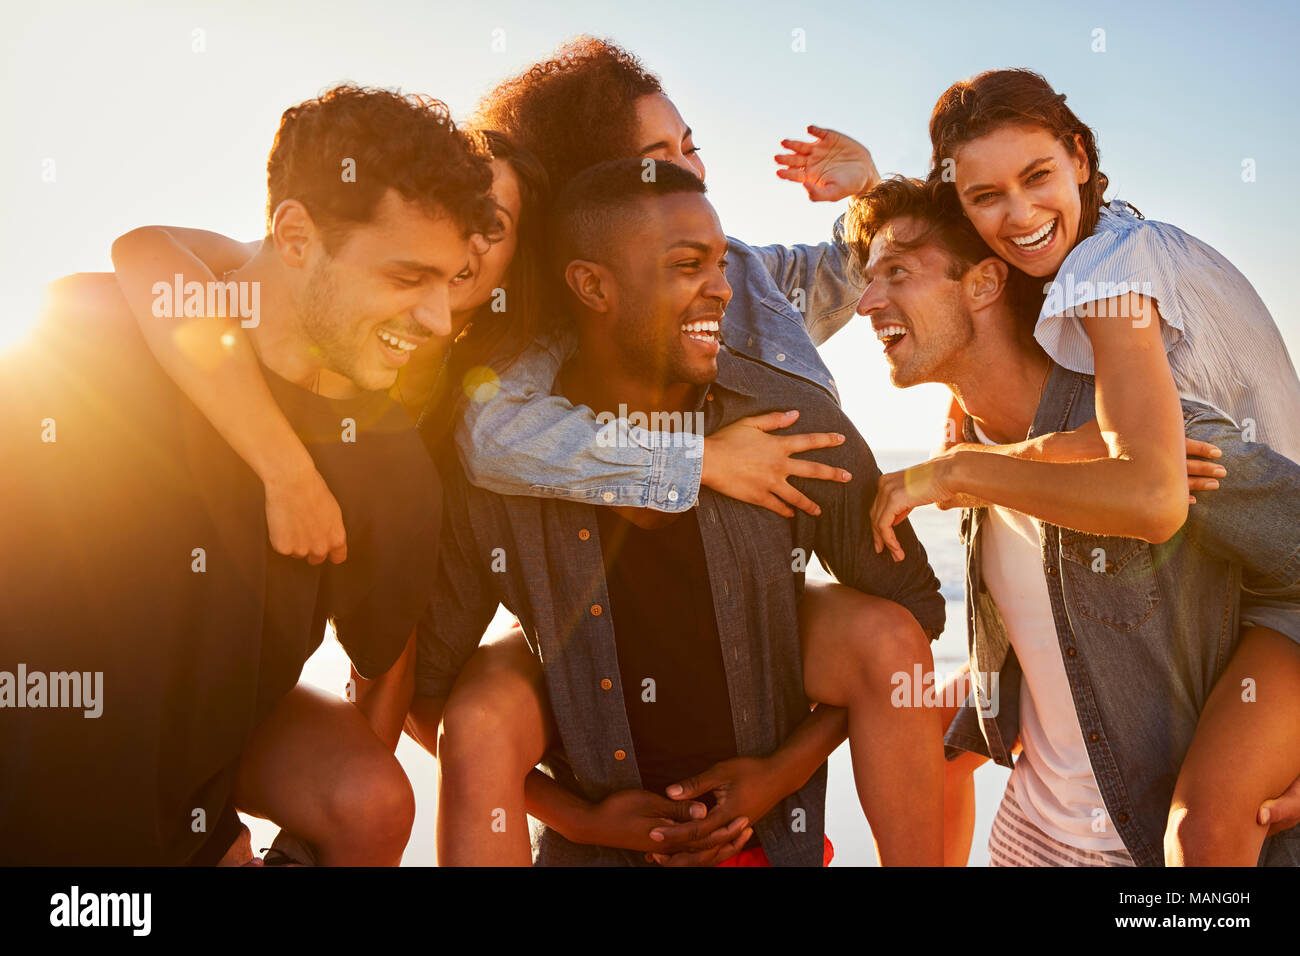 Group Of Friends On Vacation Having Piggyback Race On Beach - Stock Image